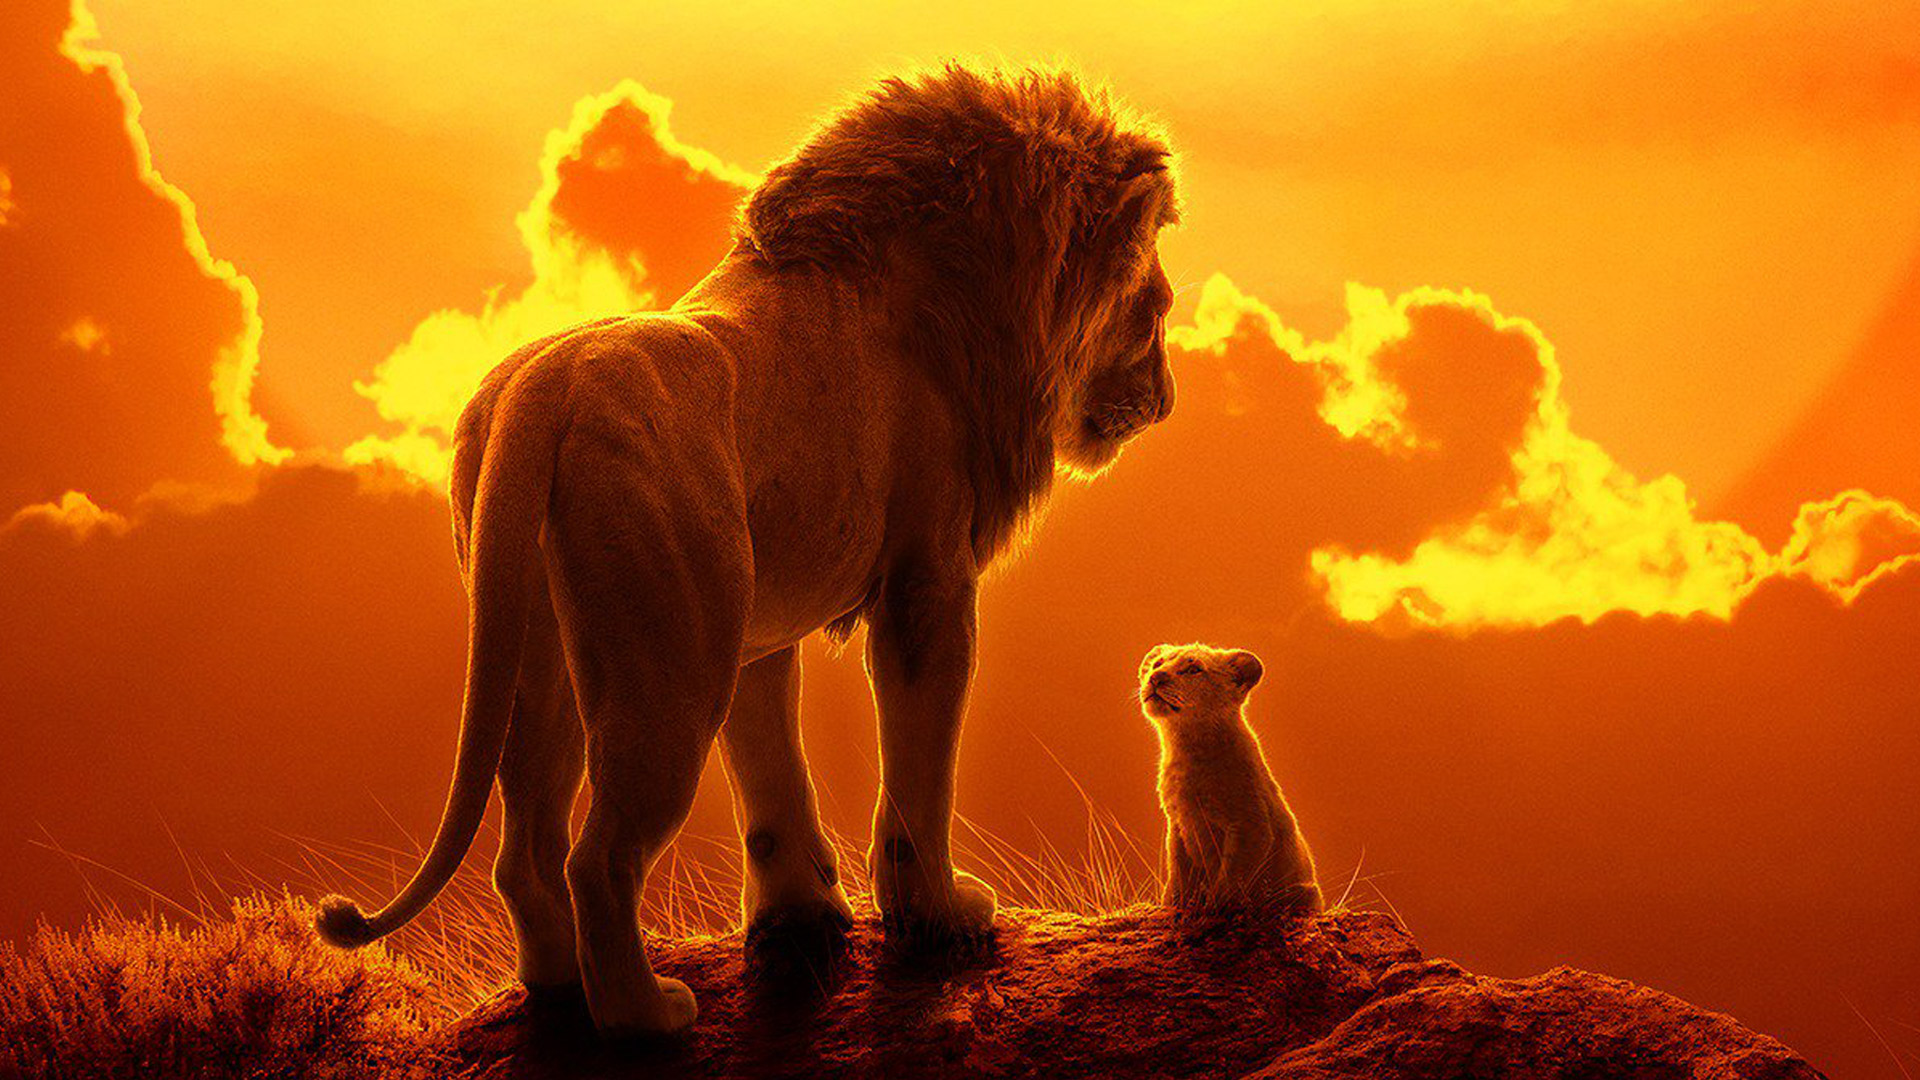 Disney's The Lion King 2019: Royal Roar or Realistic Bore?